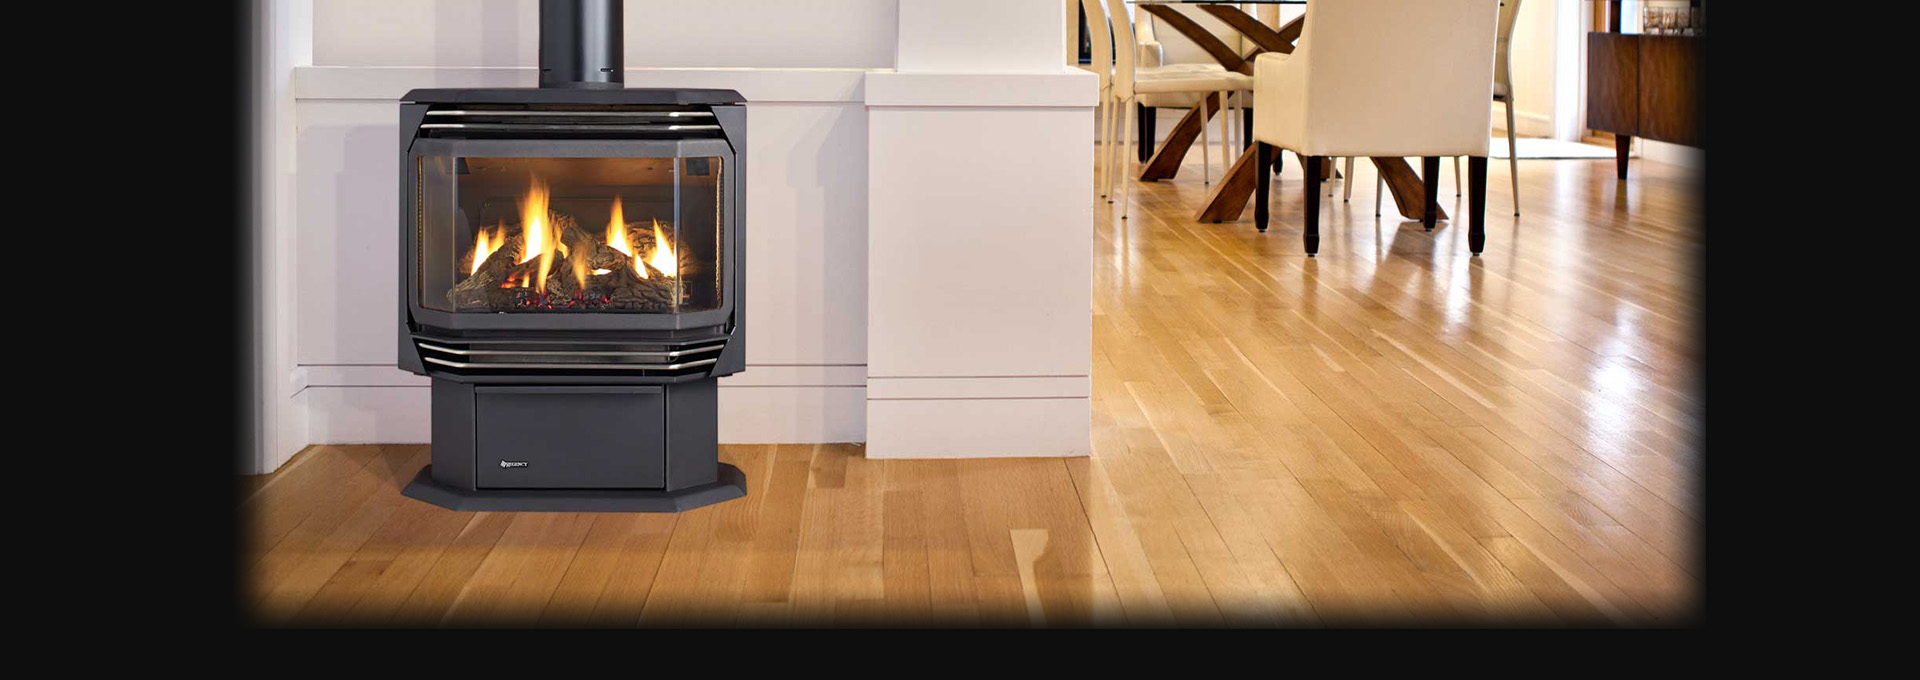 U39 Gas Stove - Gas Stoves - Regency Fireplace Products